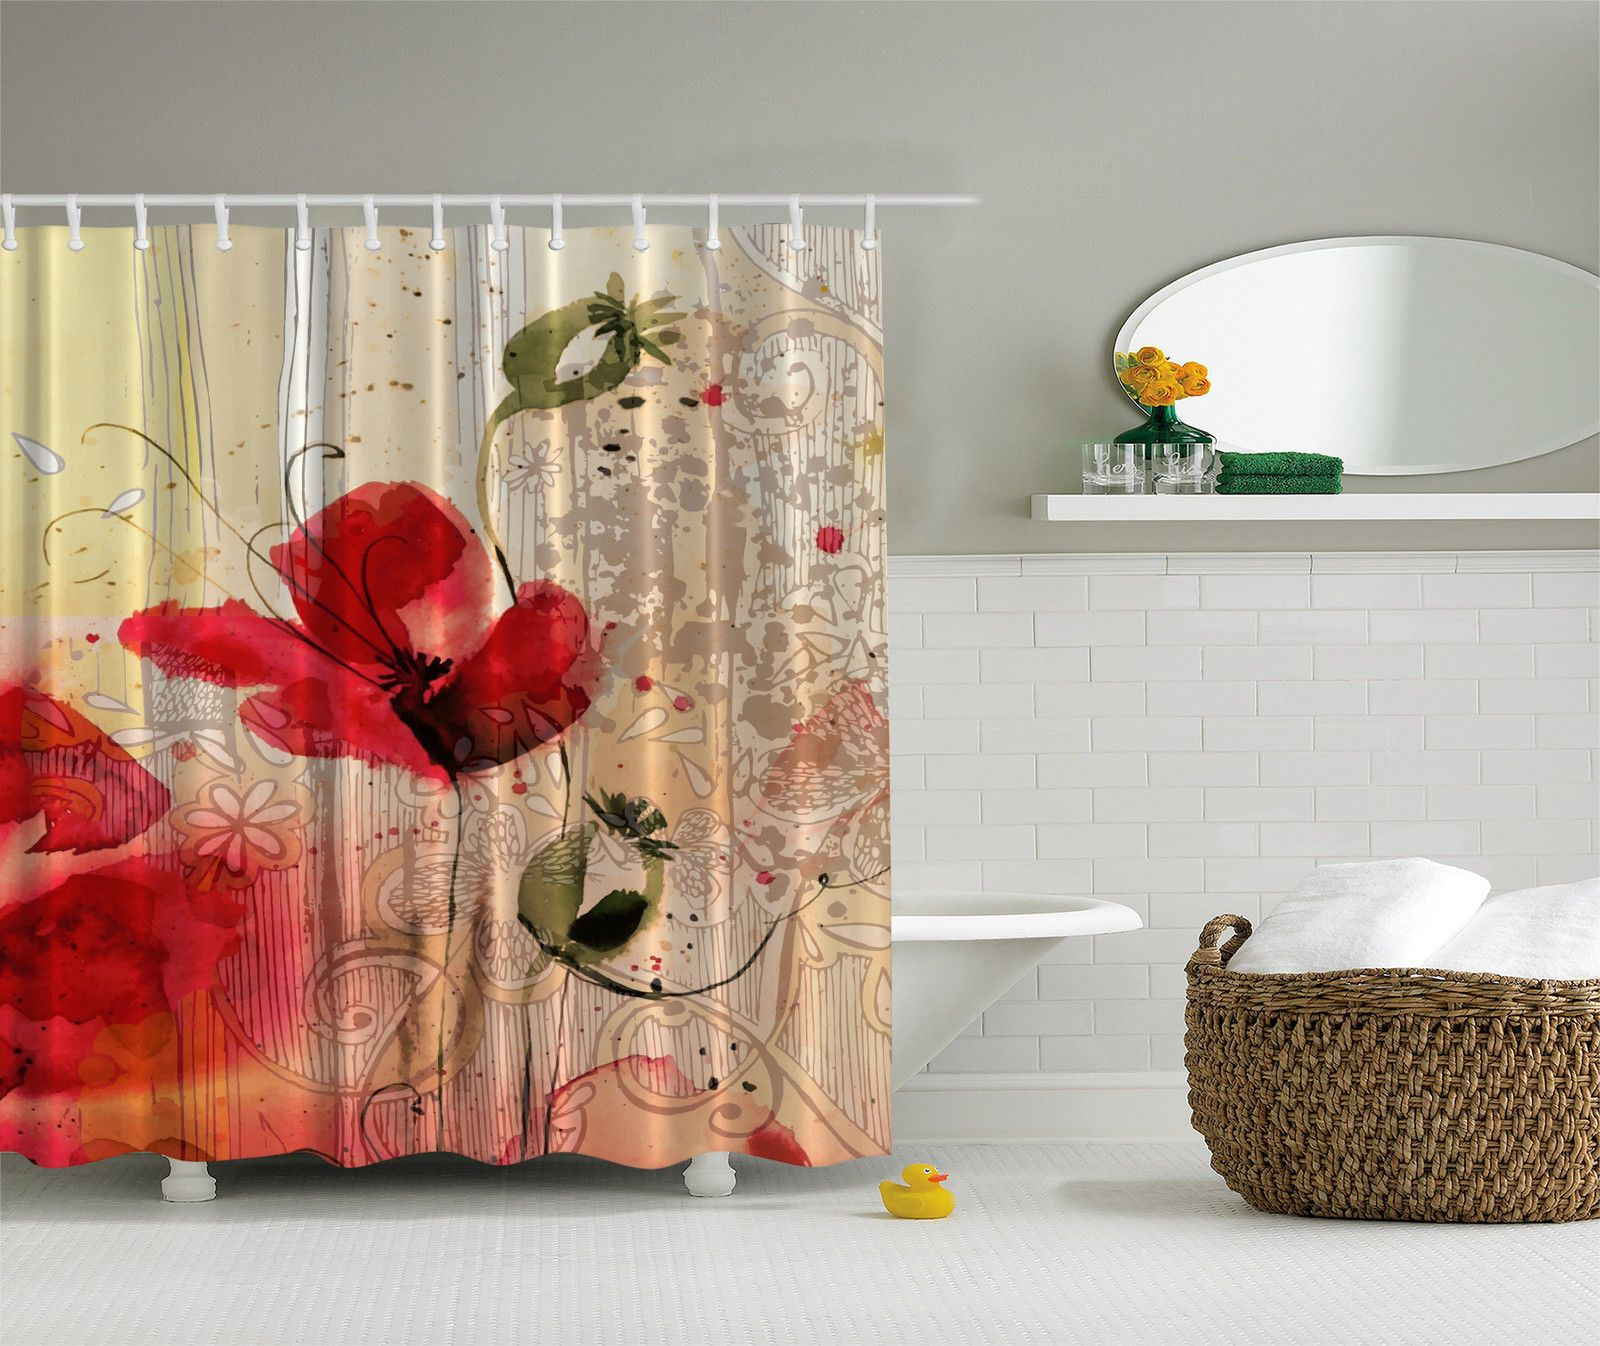 Red Poppy Flower Beige Floral Fabric Digital Art Bathroom Shower